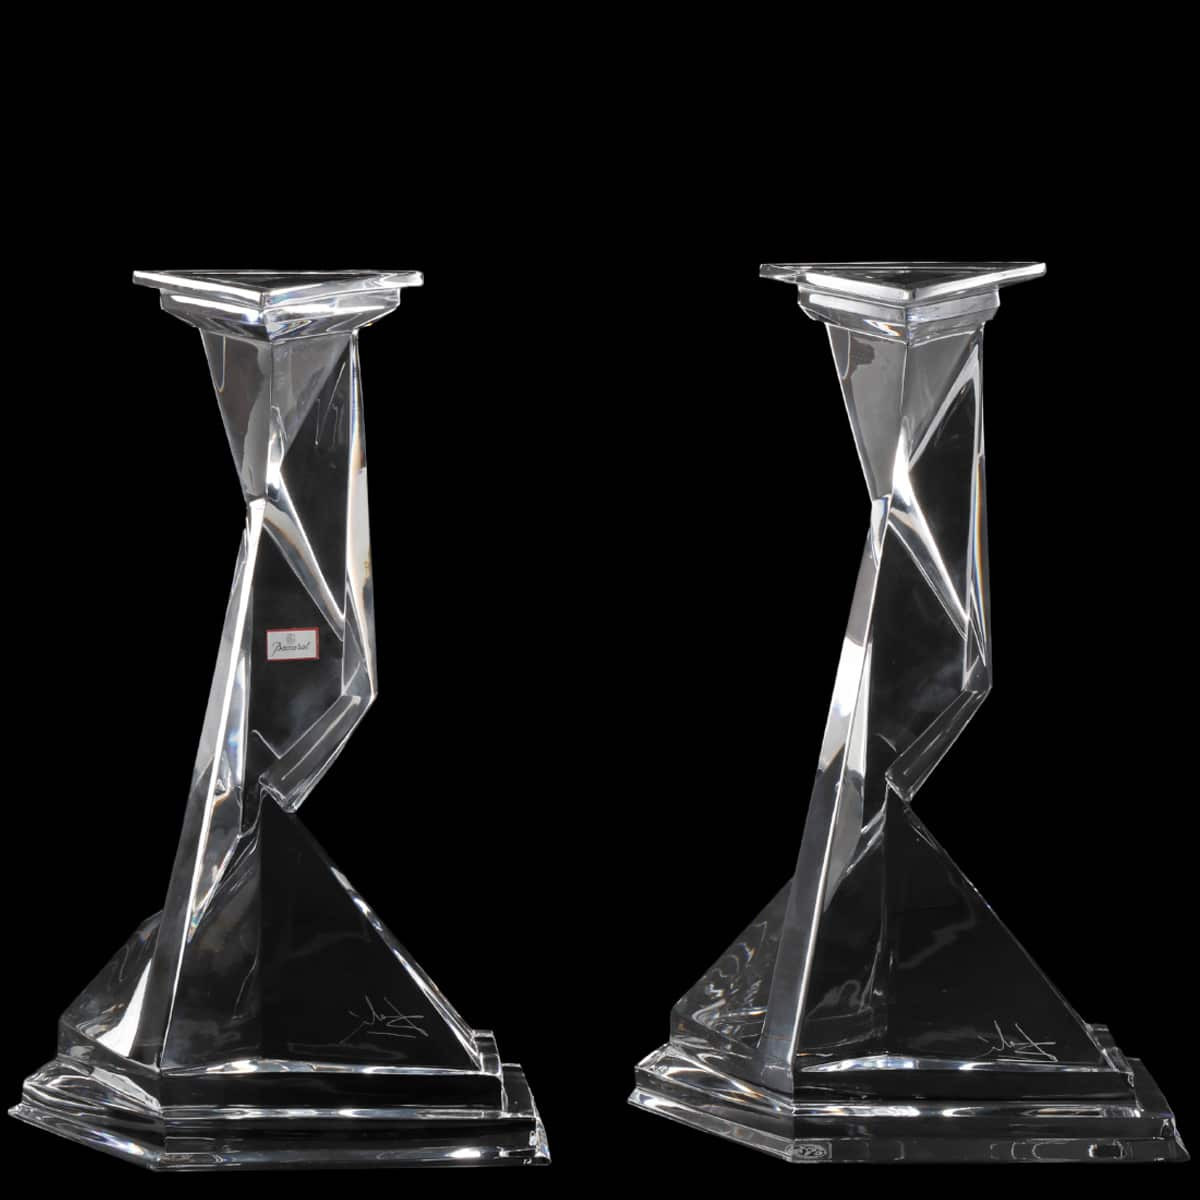 baccarat crystal vase of glass crystal throughout salvador dali for baccarat castor pollux candlesticks ahlers ogletree auction gallery